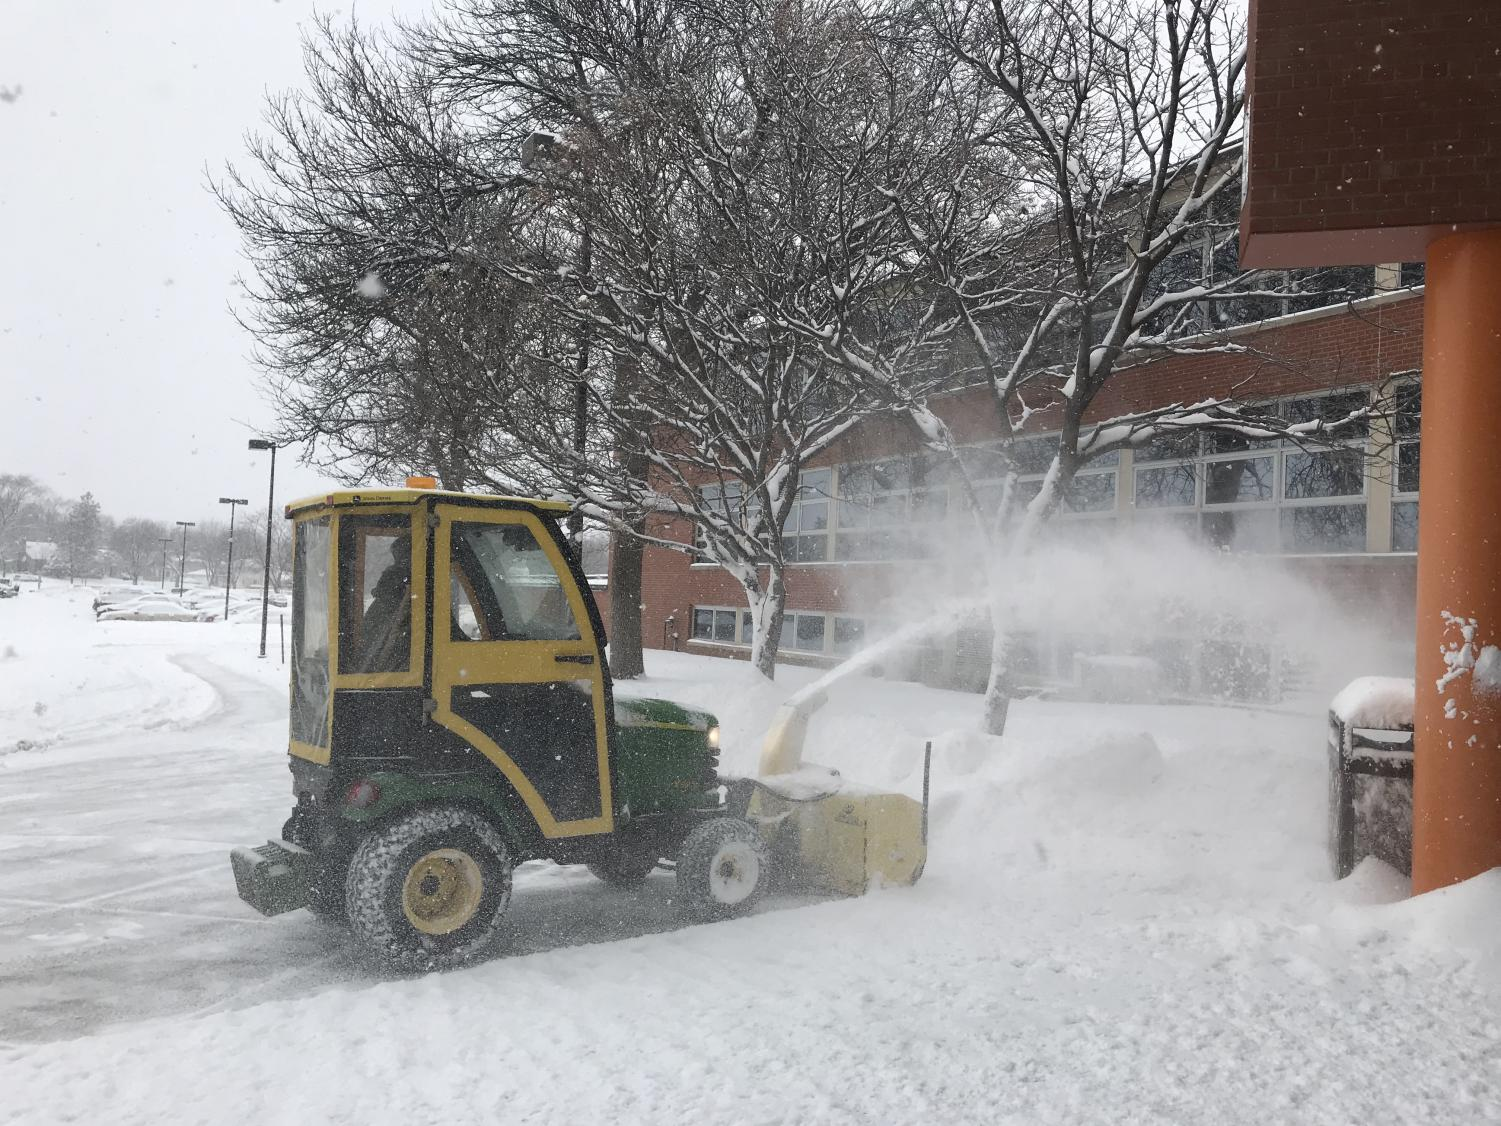 A snow blower at the high school Feb. 7. Students will be released one hour early due to the snow conditions.